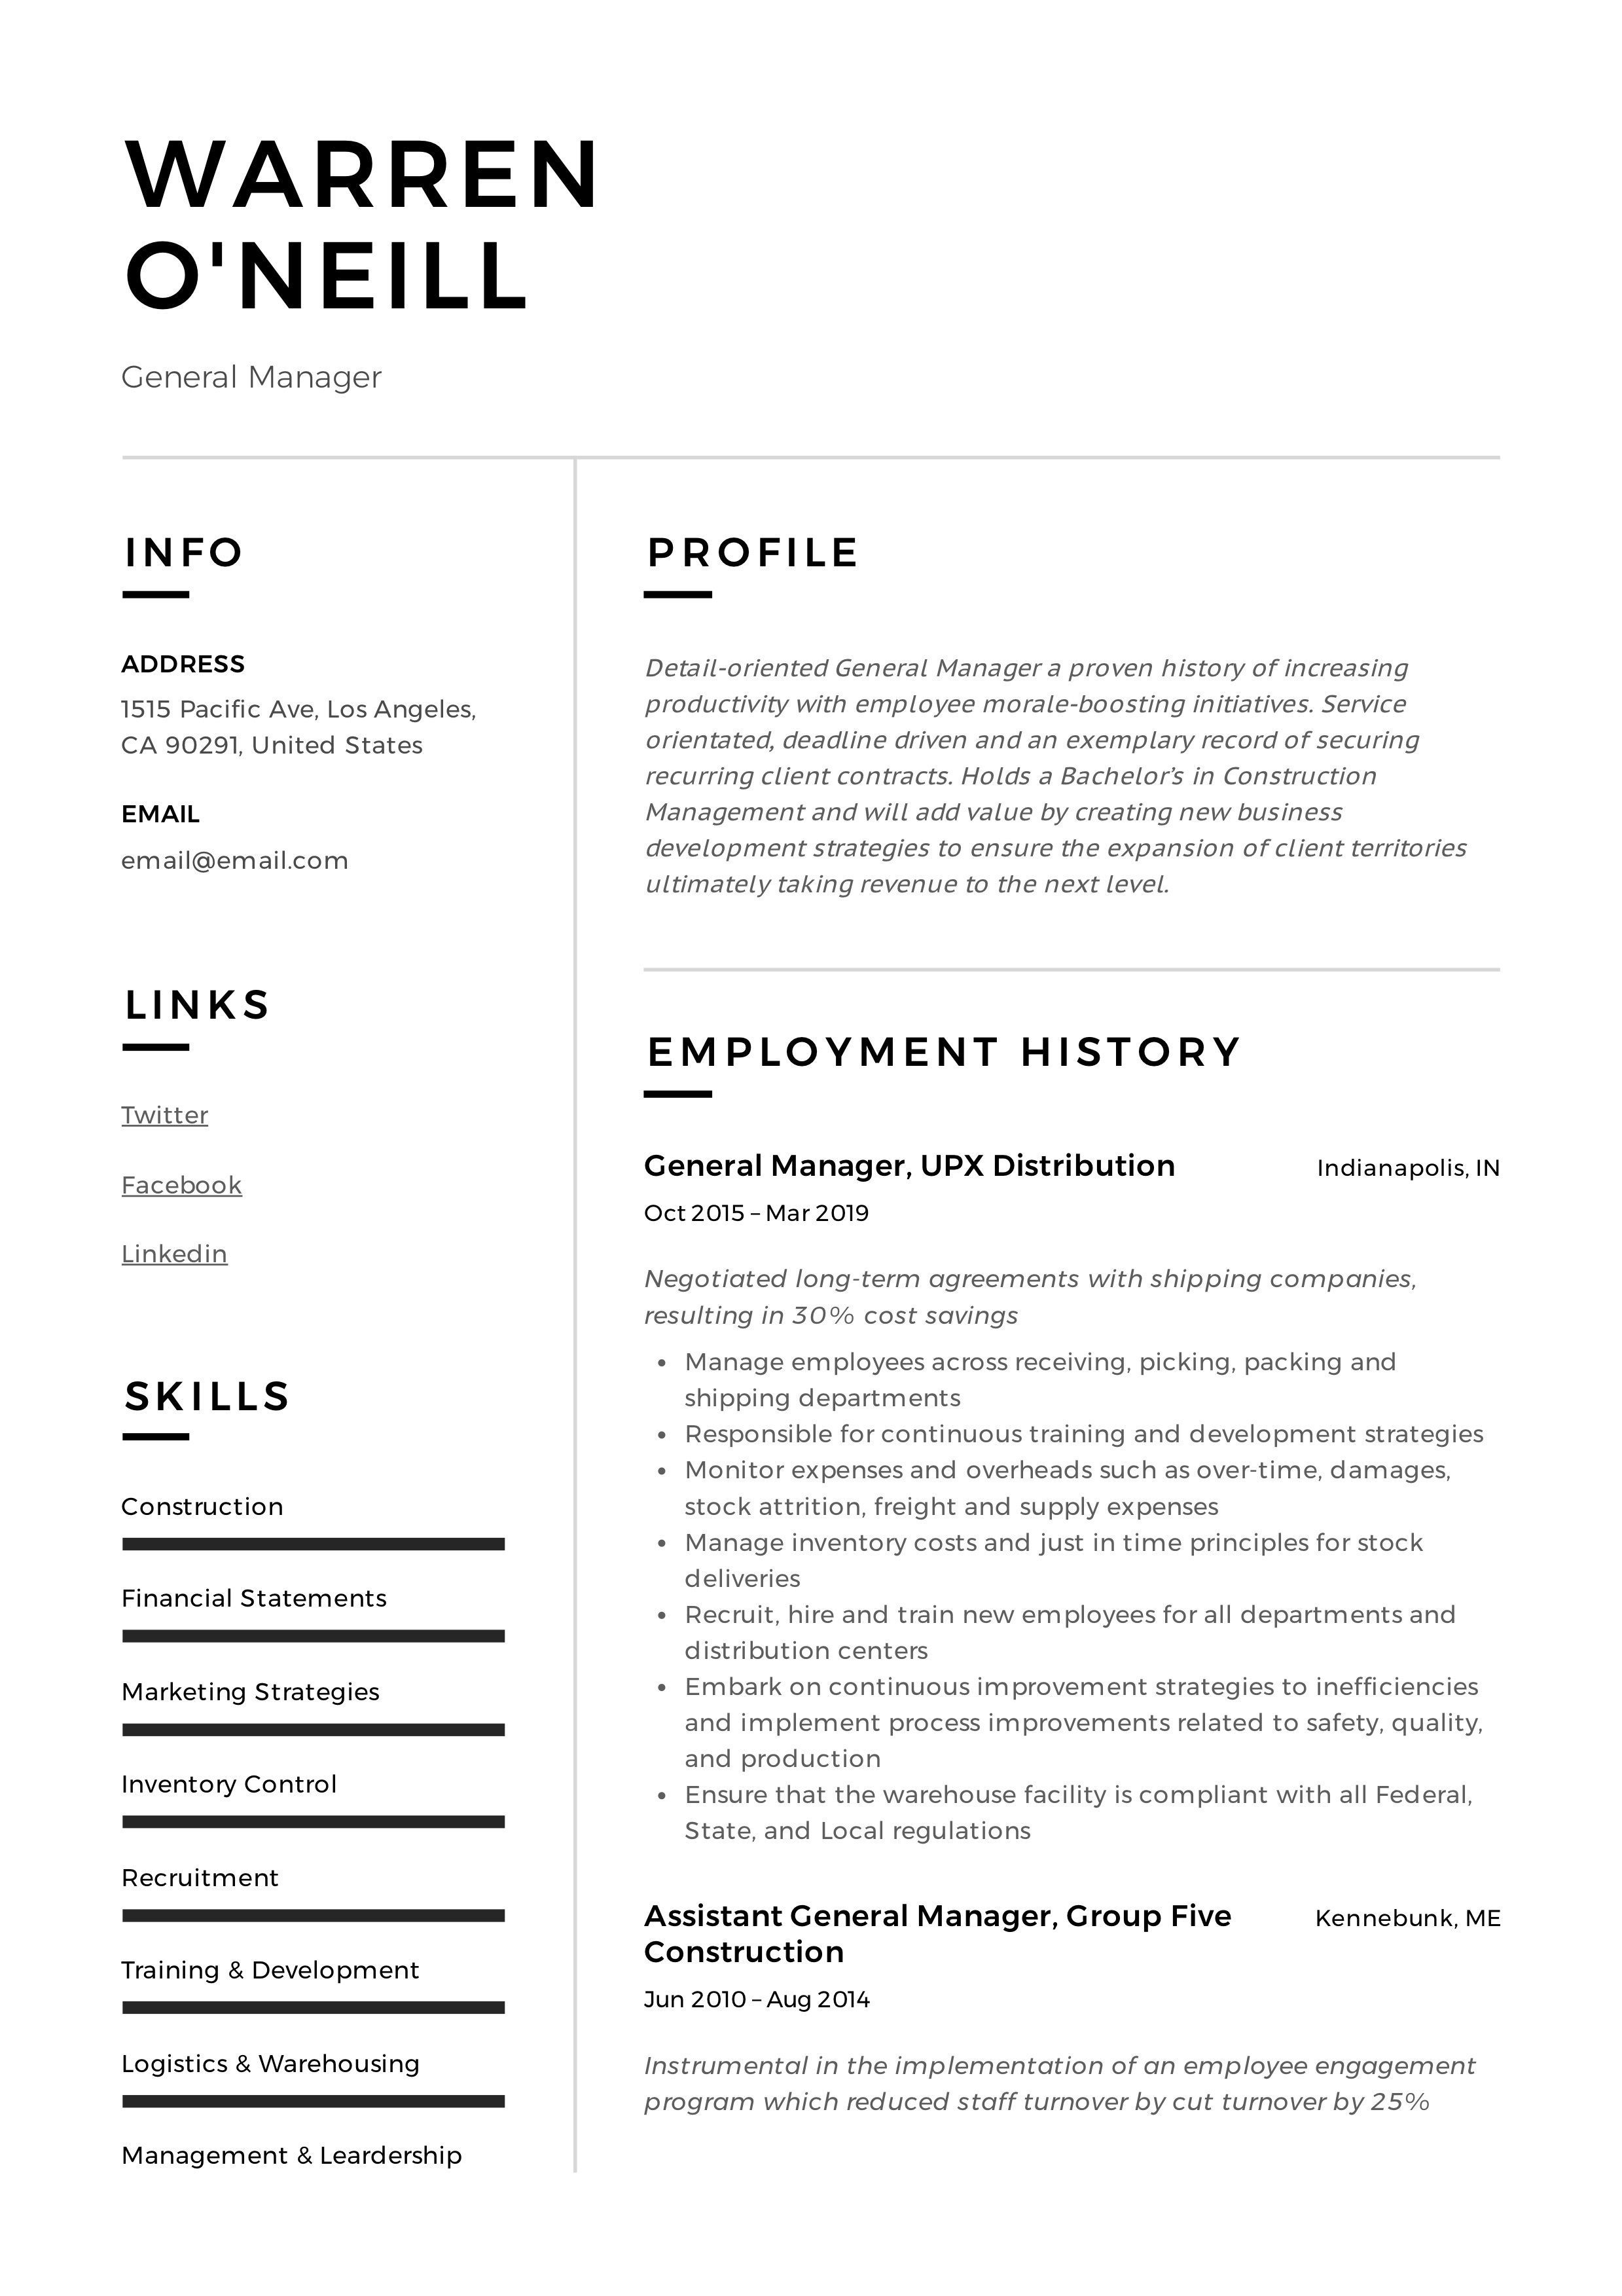 010 Remarkable Resume Example Pdf Free Download High Definition Full